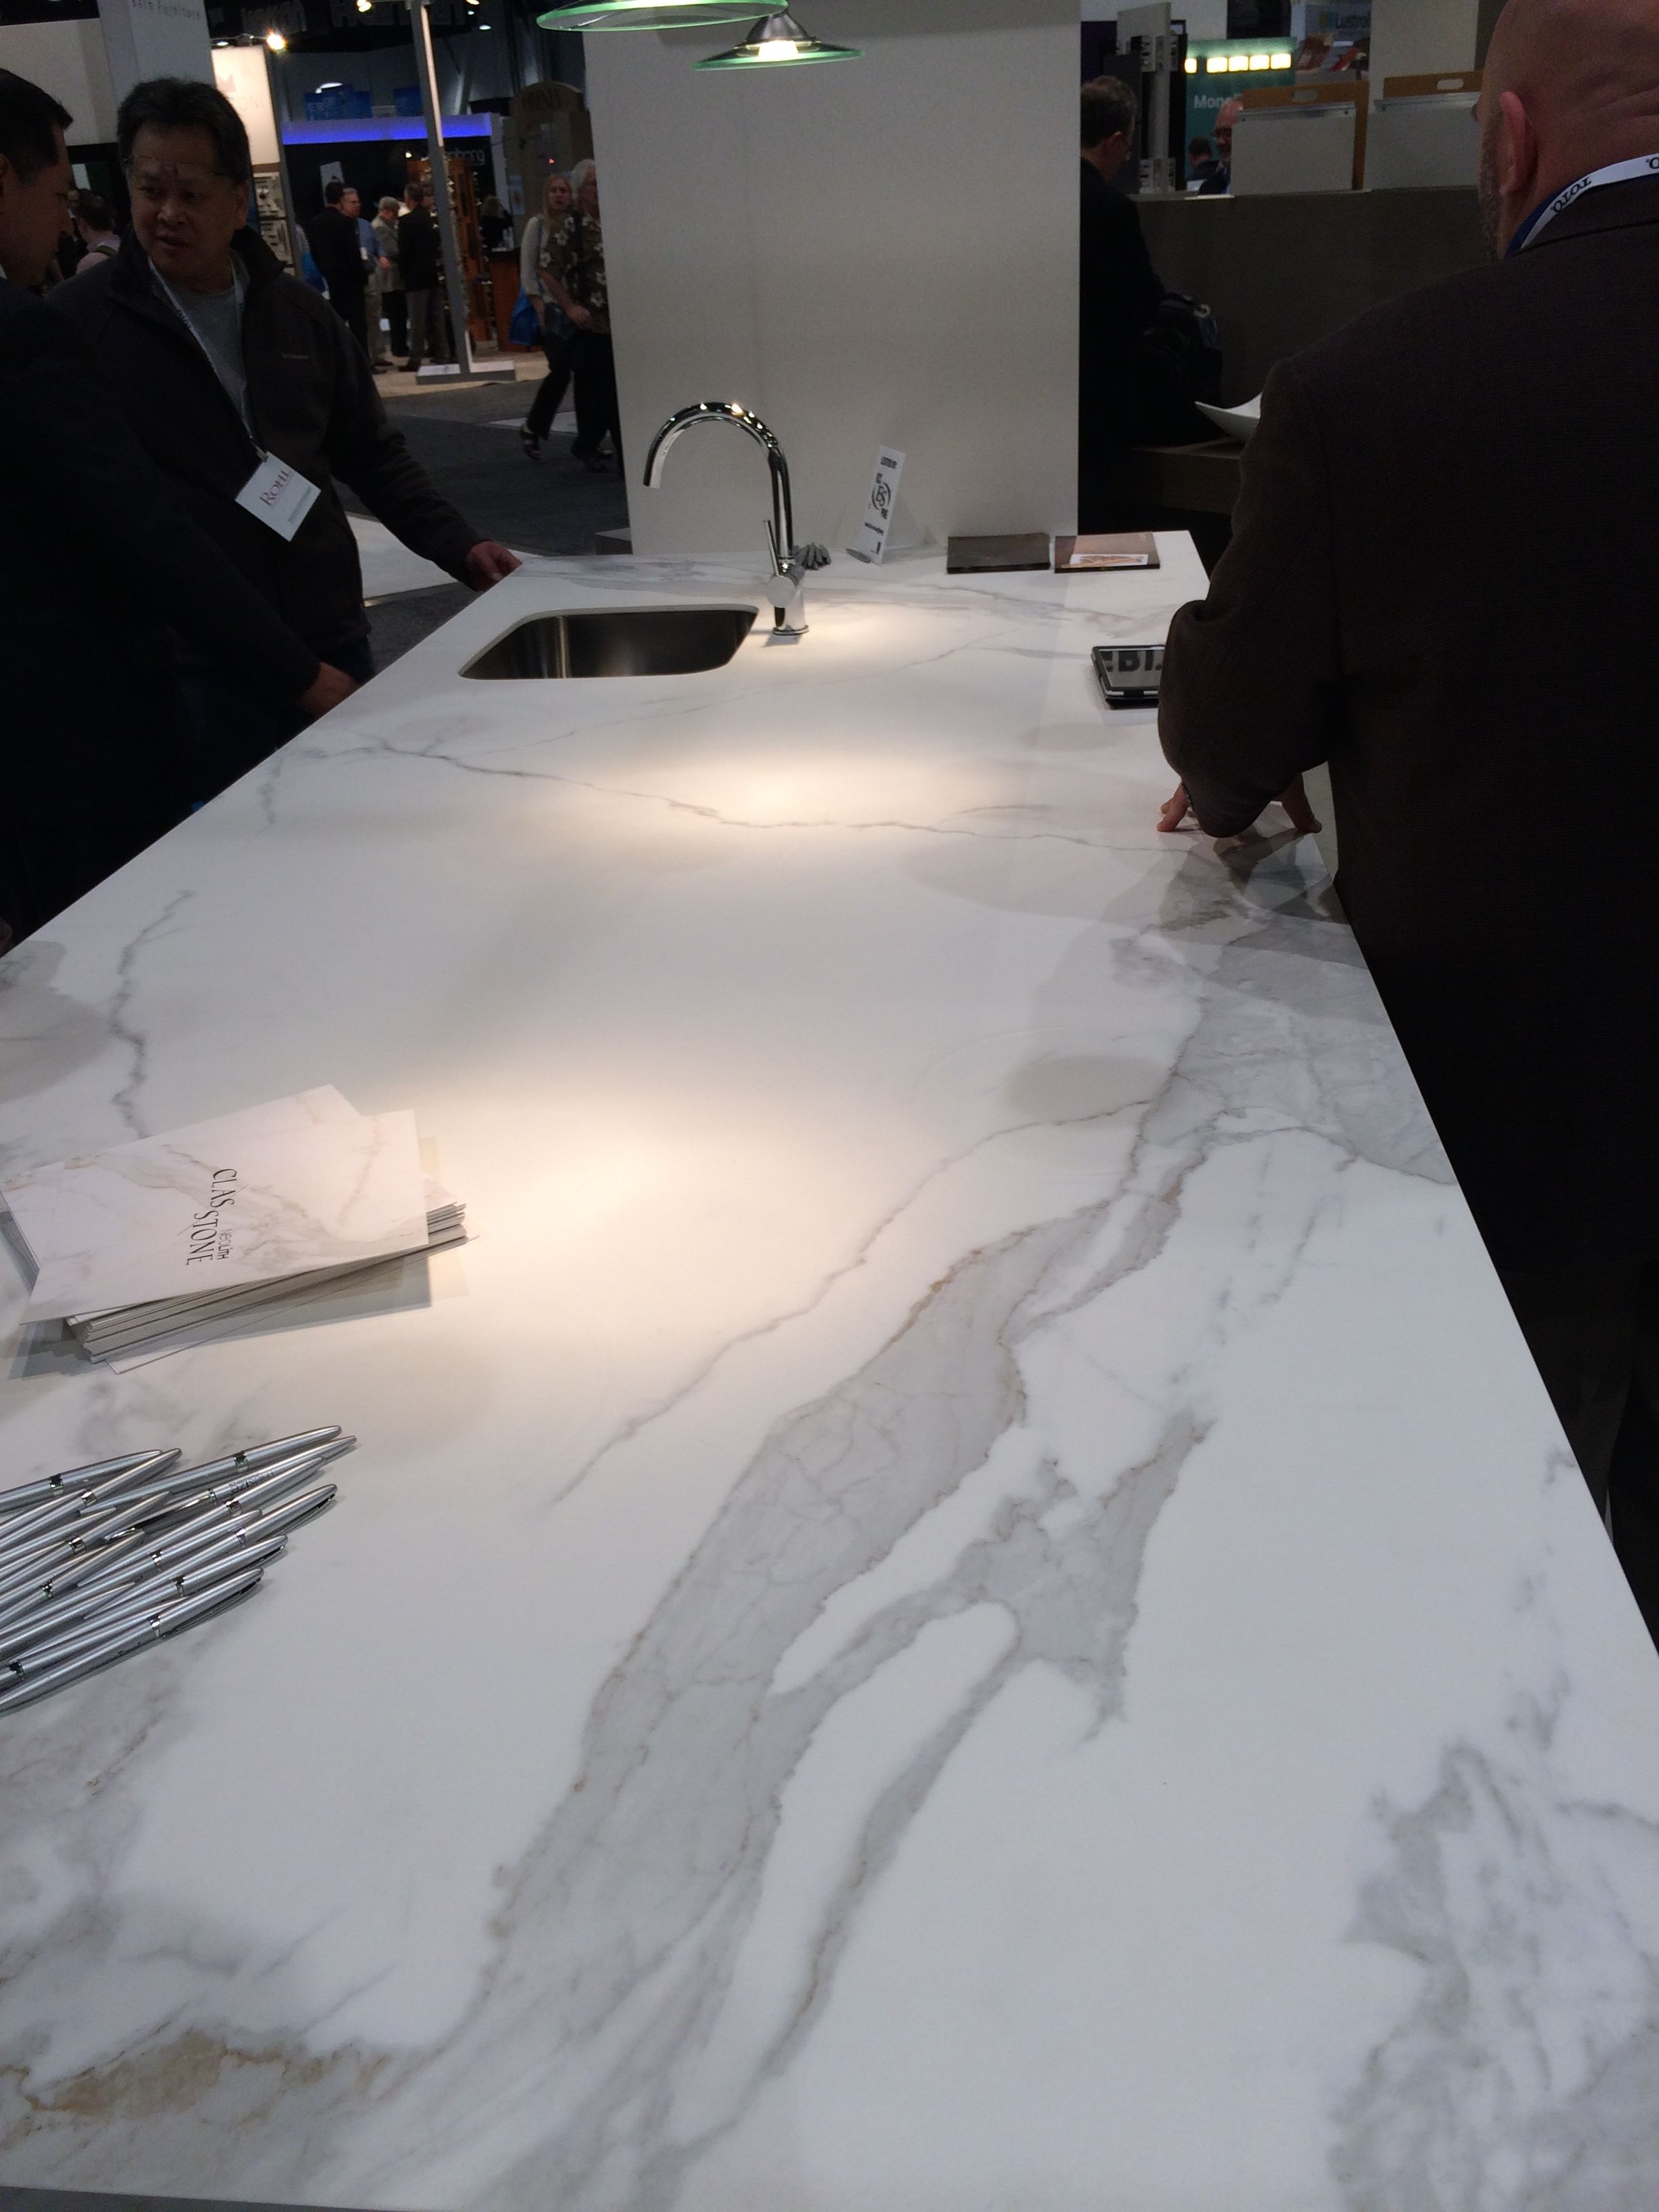 Kitchen Backsplash Las Vegas estatuario neolith at a kbis 2014 las vegas trade show | trade